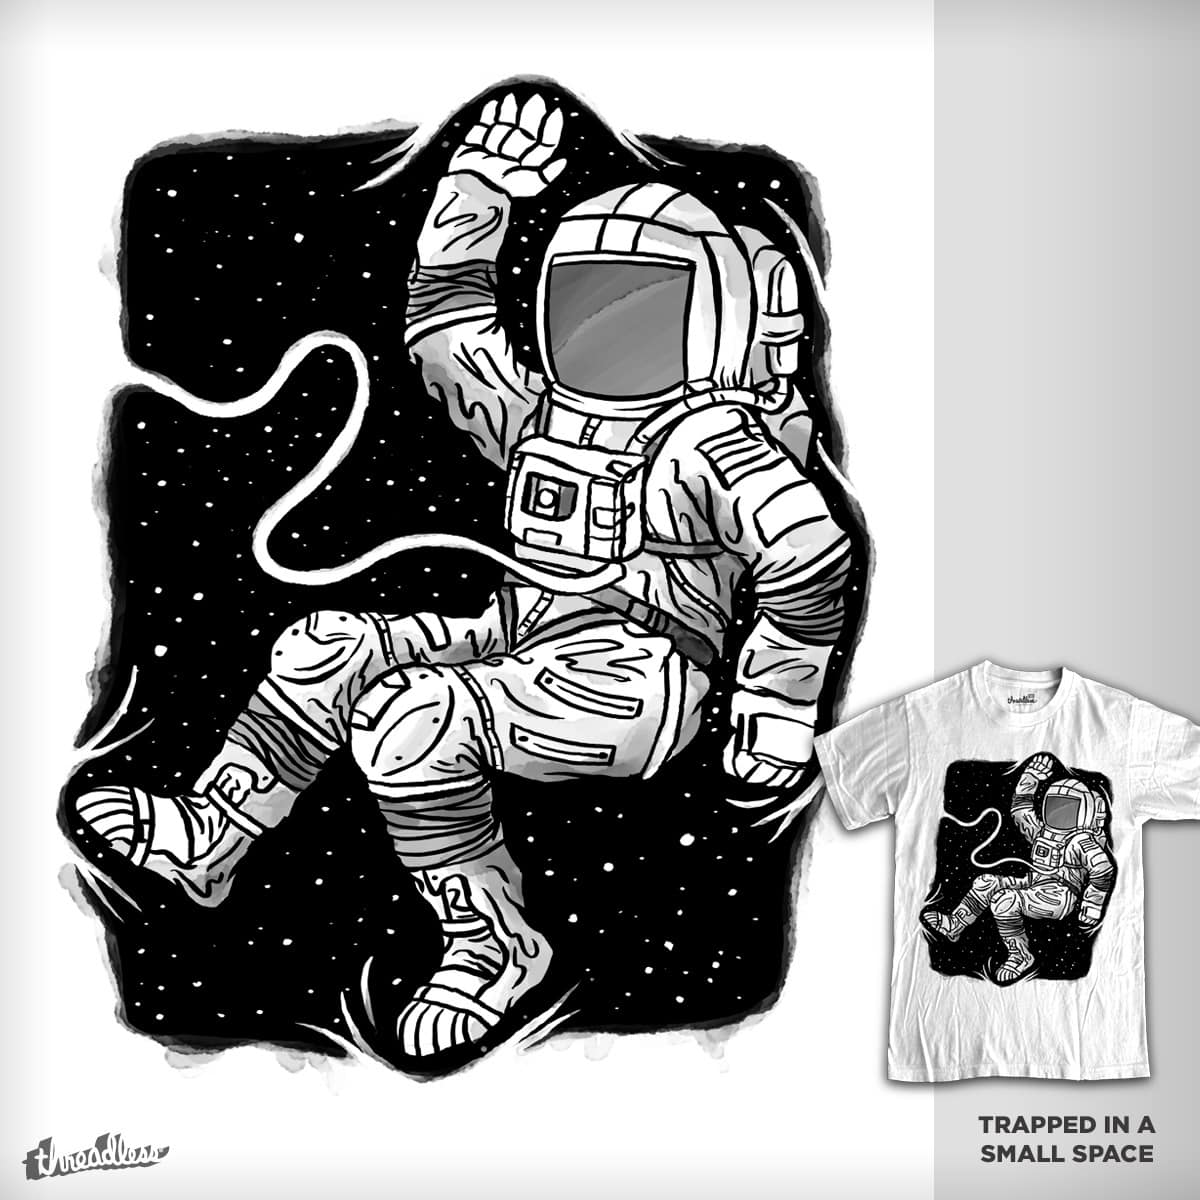 Trapped in a Small Space by WanderingBert on Threadless